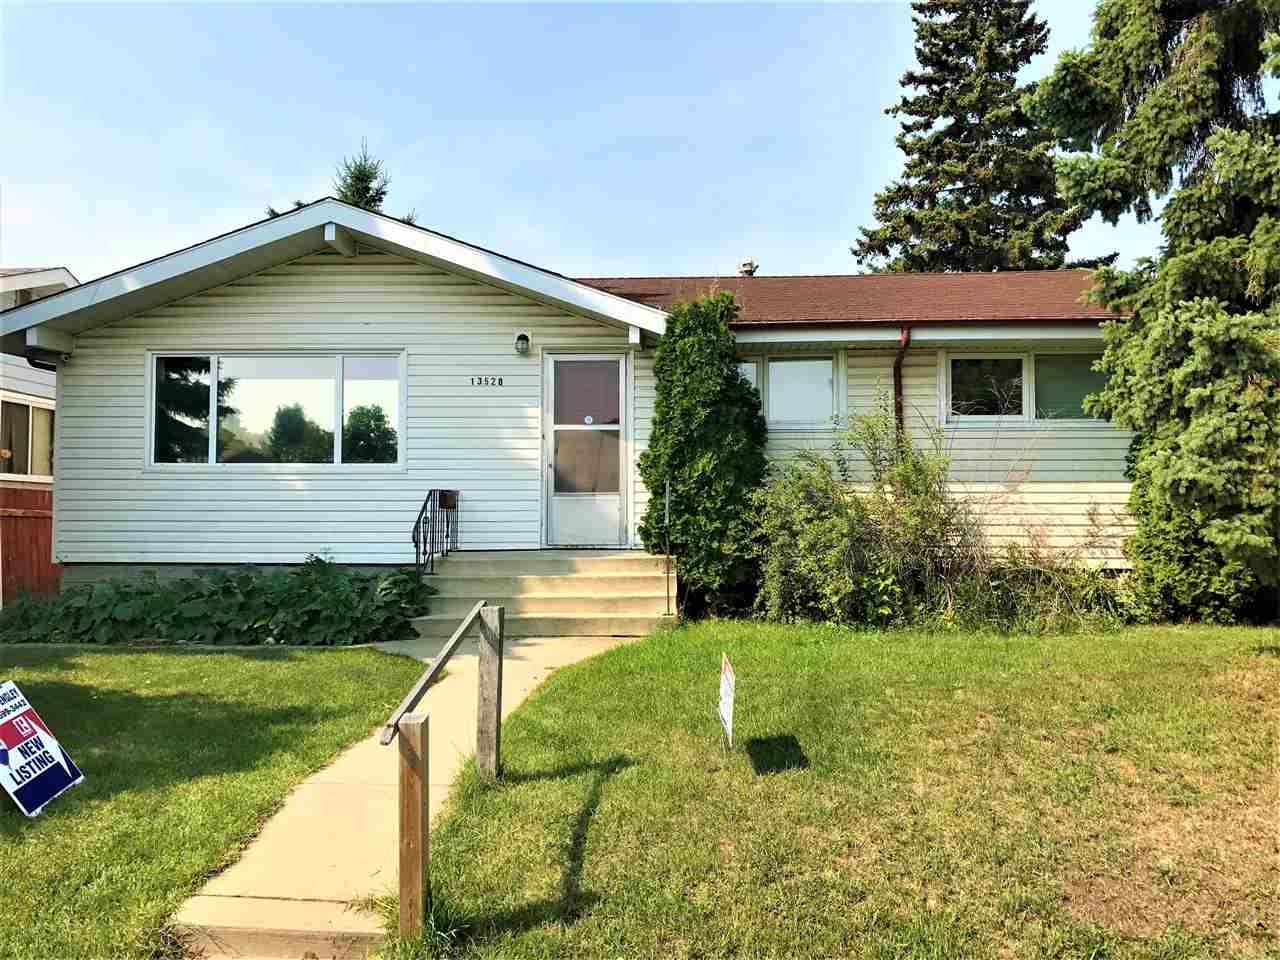 Main Photo: 13528 113A Street in Edmonton: Zone 01 House for sale : MLS® # E4078174